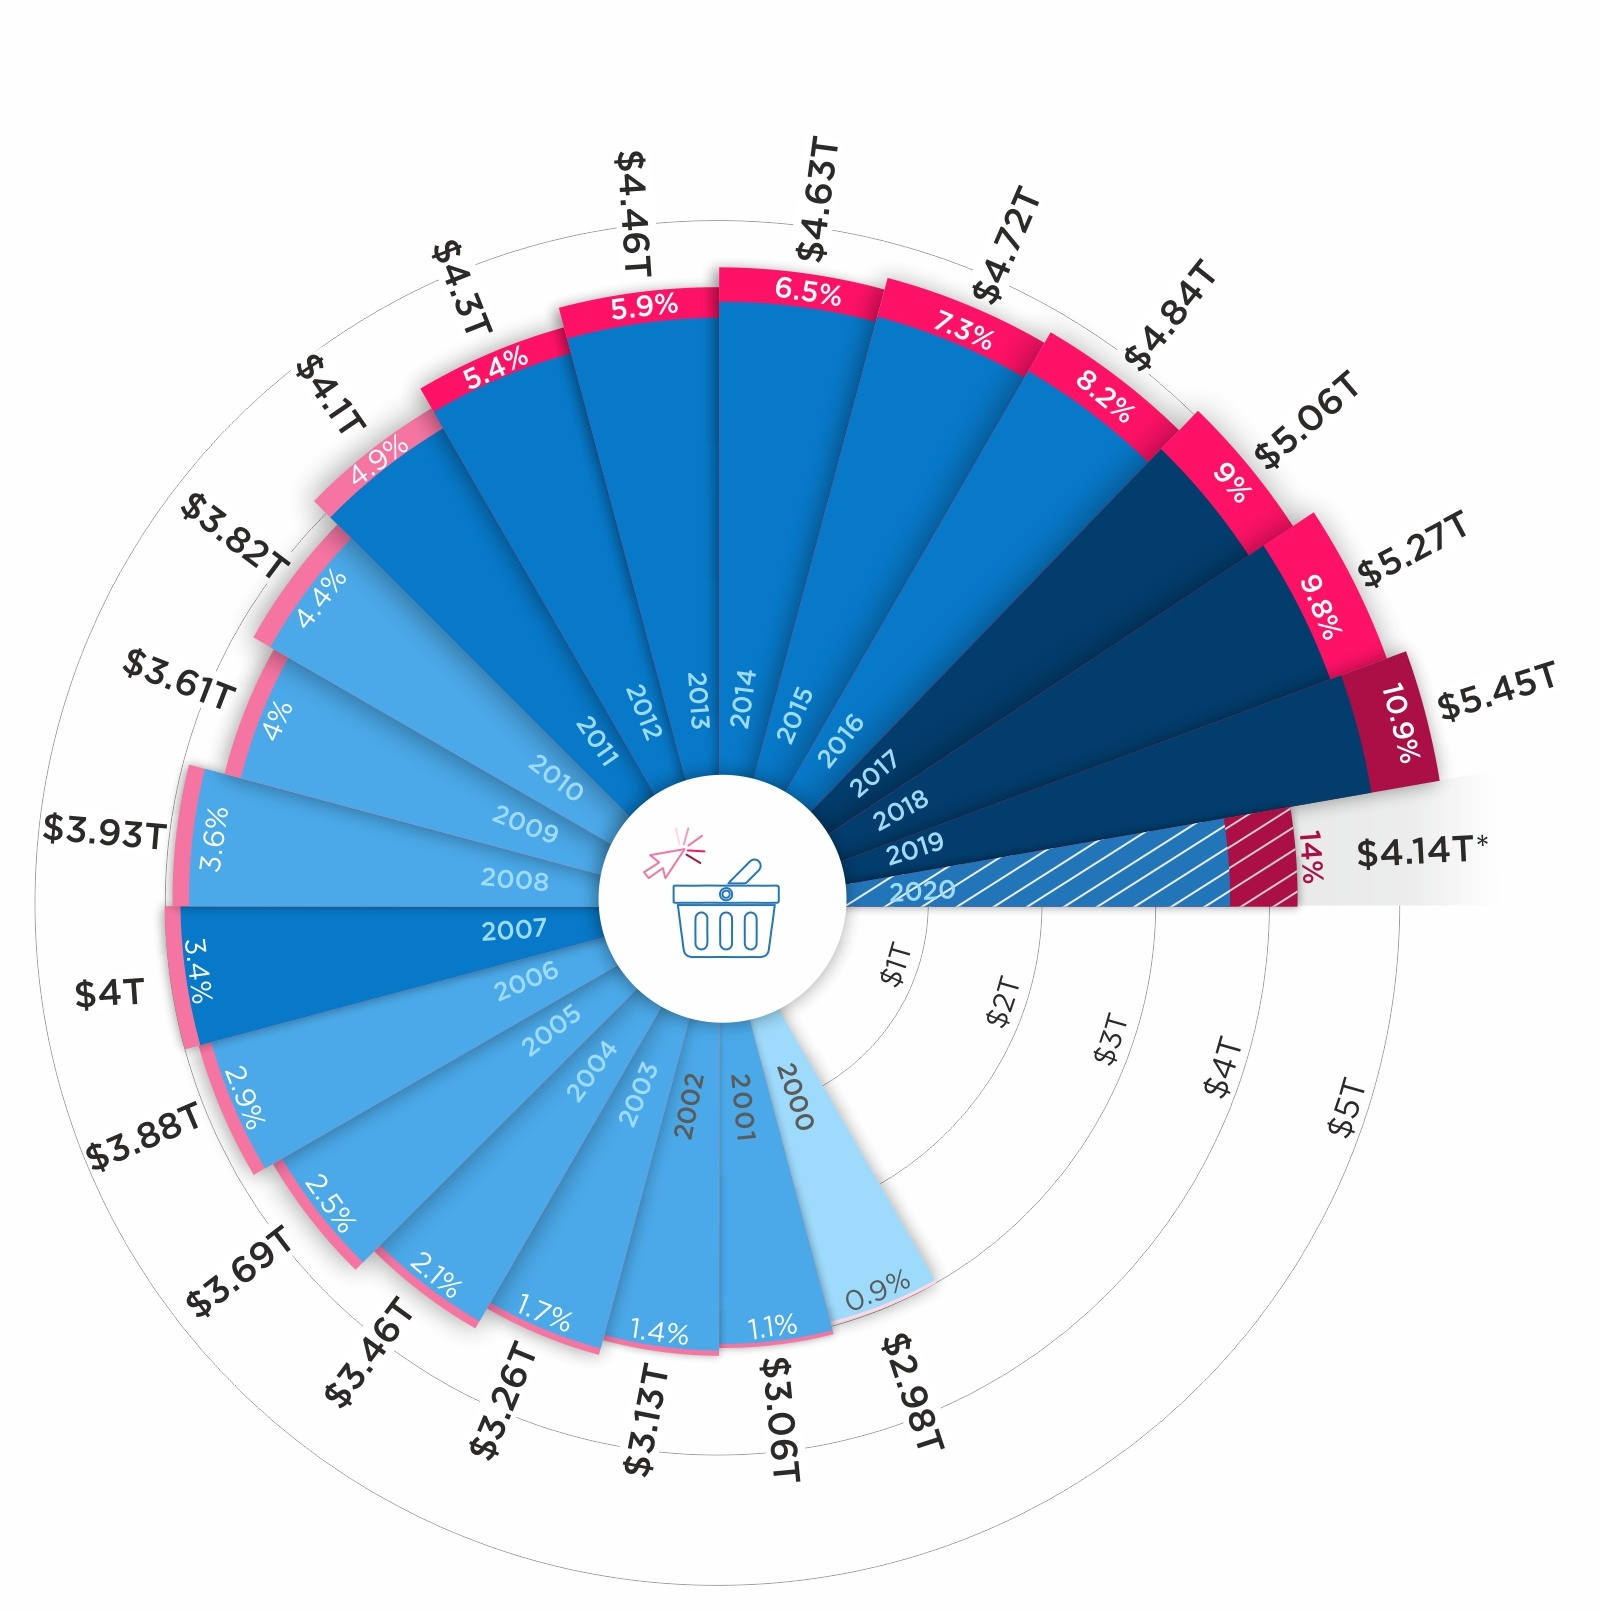 Visualizing Over 20 Years of Retail Sales and E-Commerce in the U.S. Retail Industry